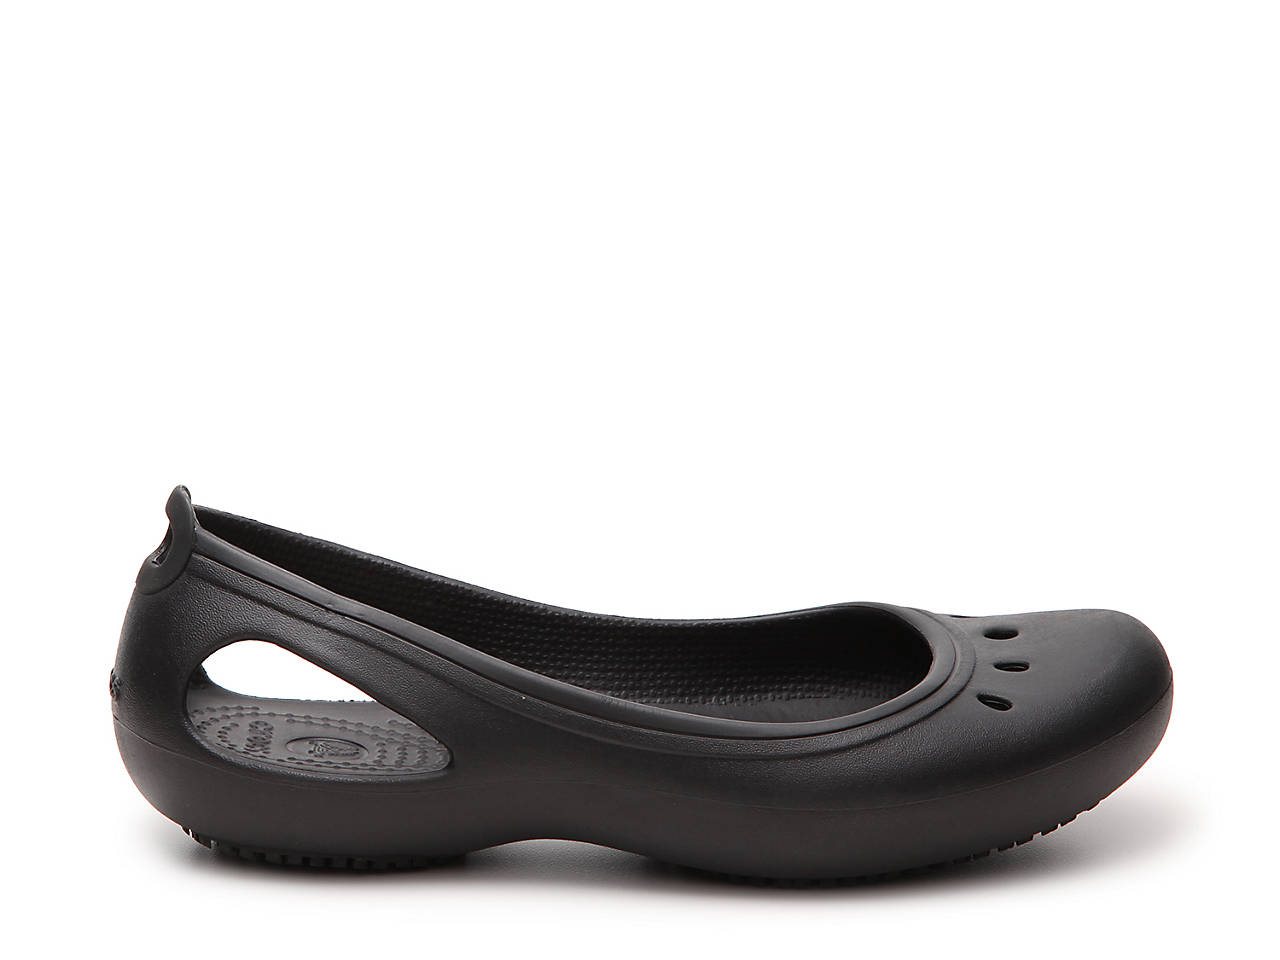 5334a5dd063 Crocs Kadee Work Flat Women s Shoes